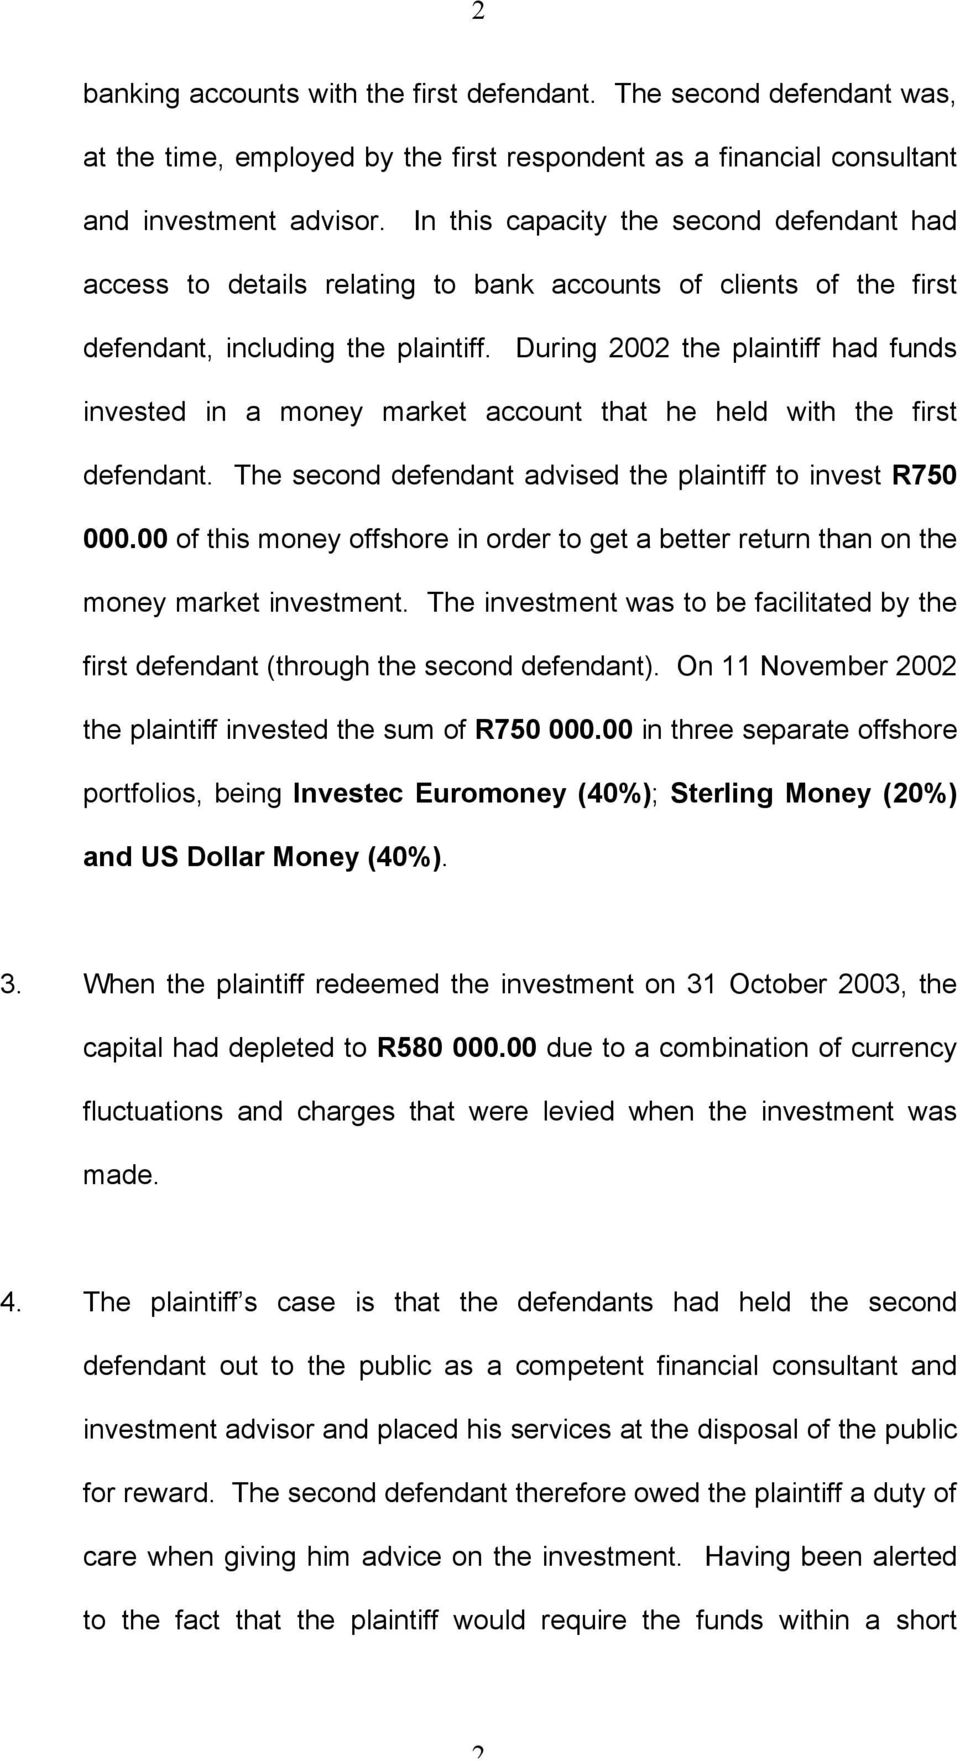 During 2002 the plaintiff had funds invested in a money market account that he held with the first defendant. The second defendant advised the plaintiff to invest R750 000.